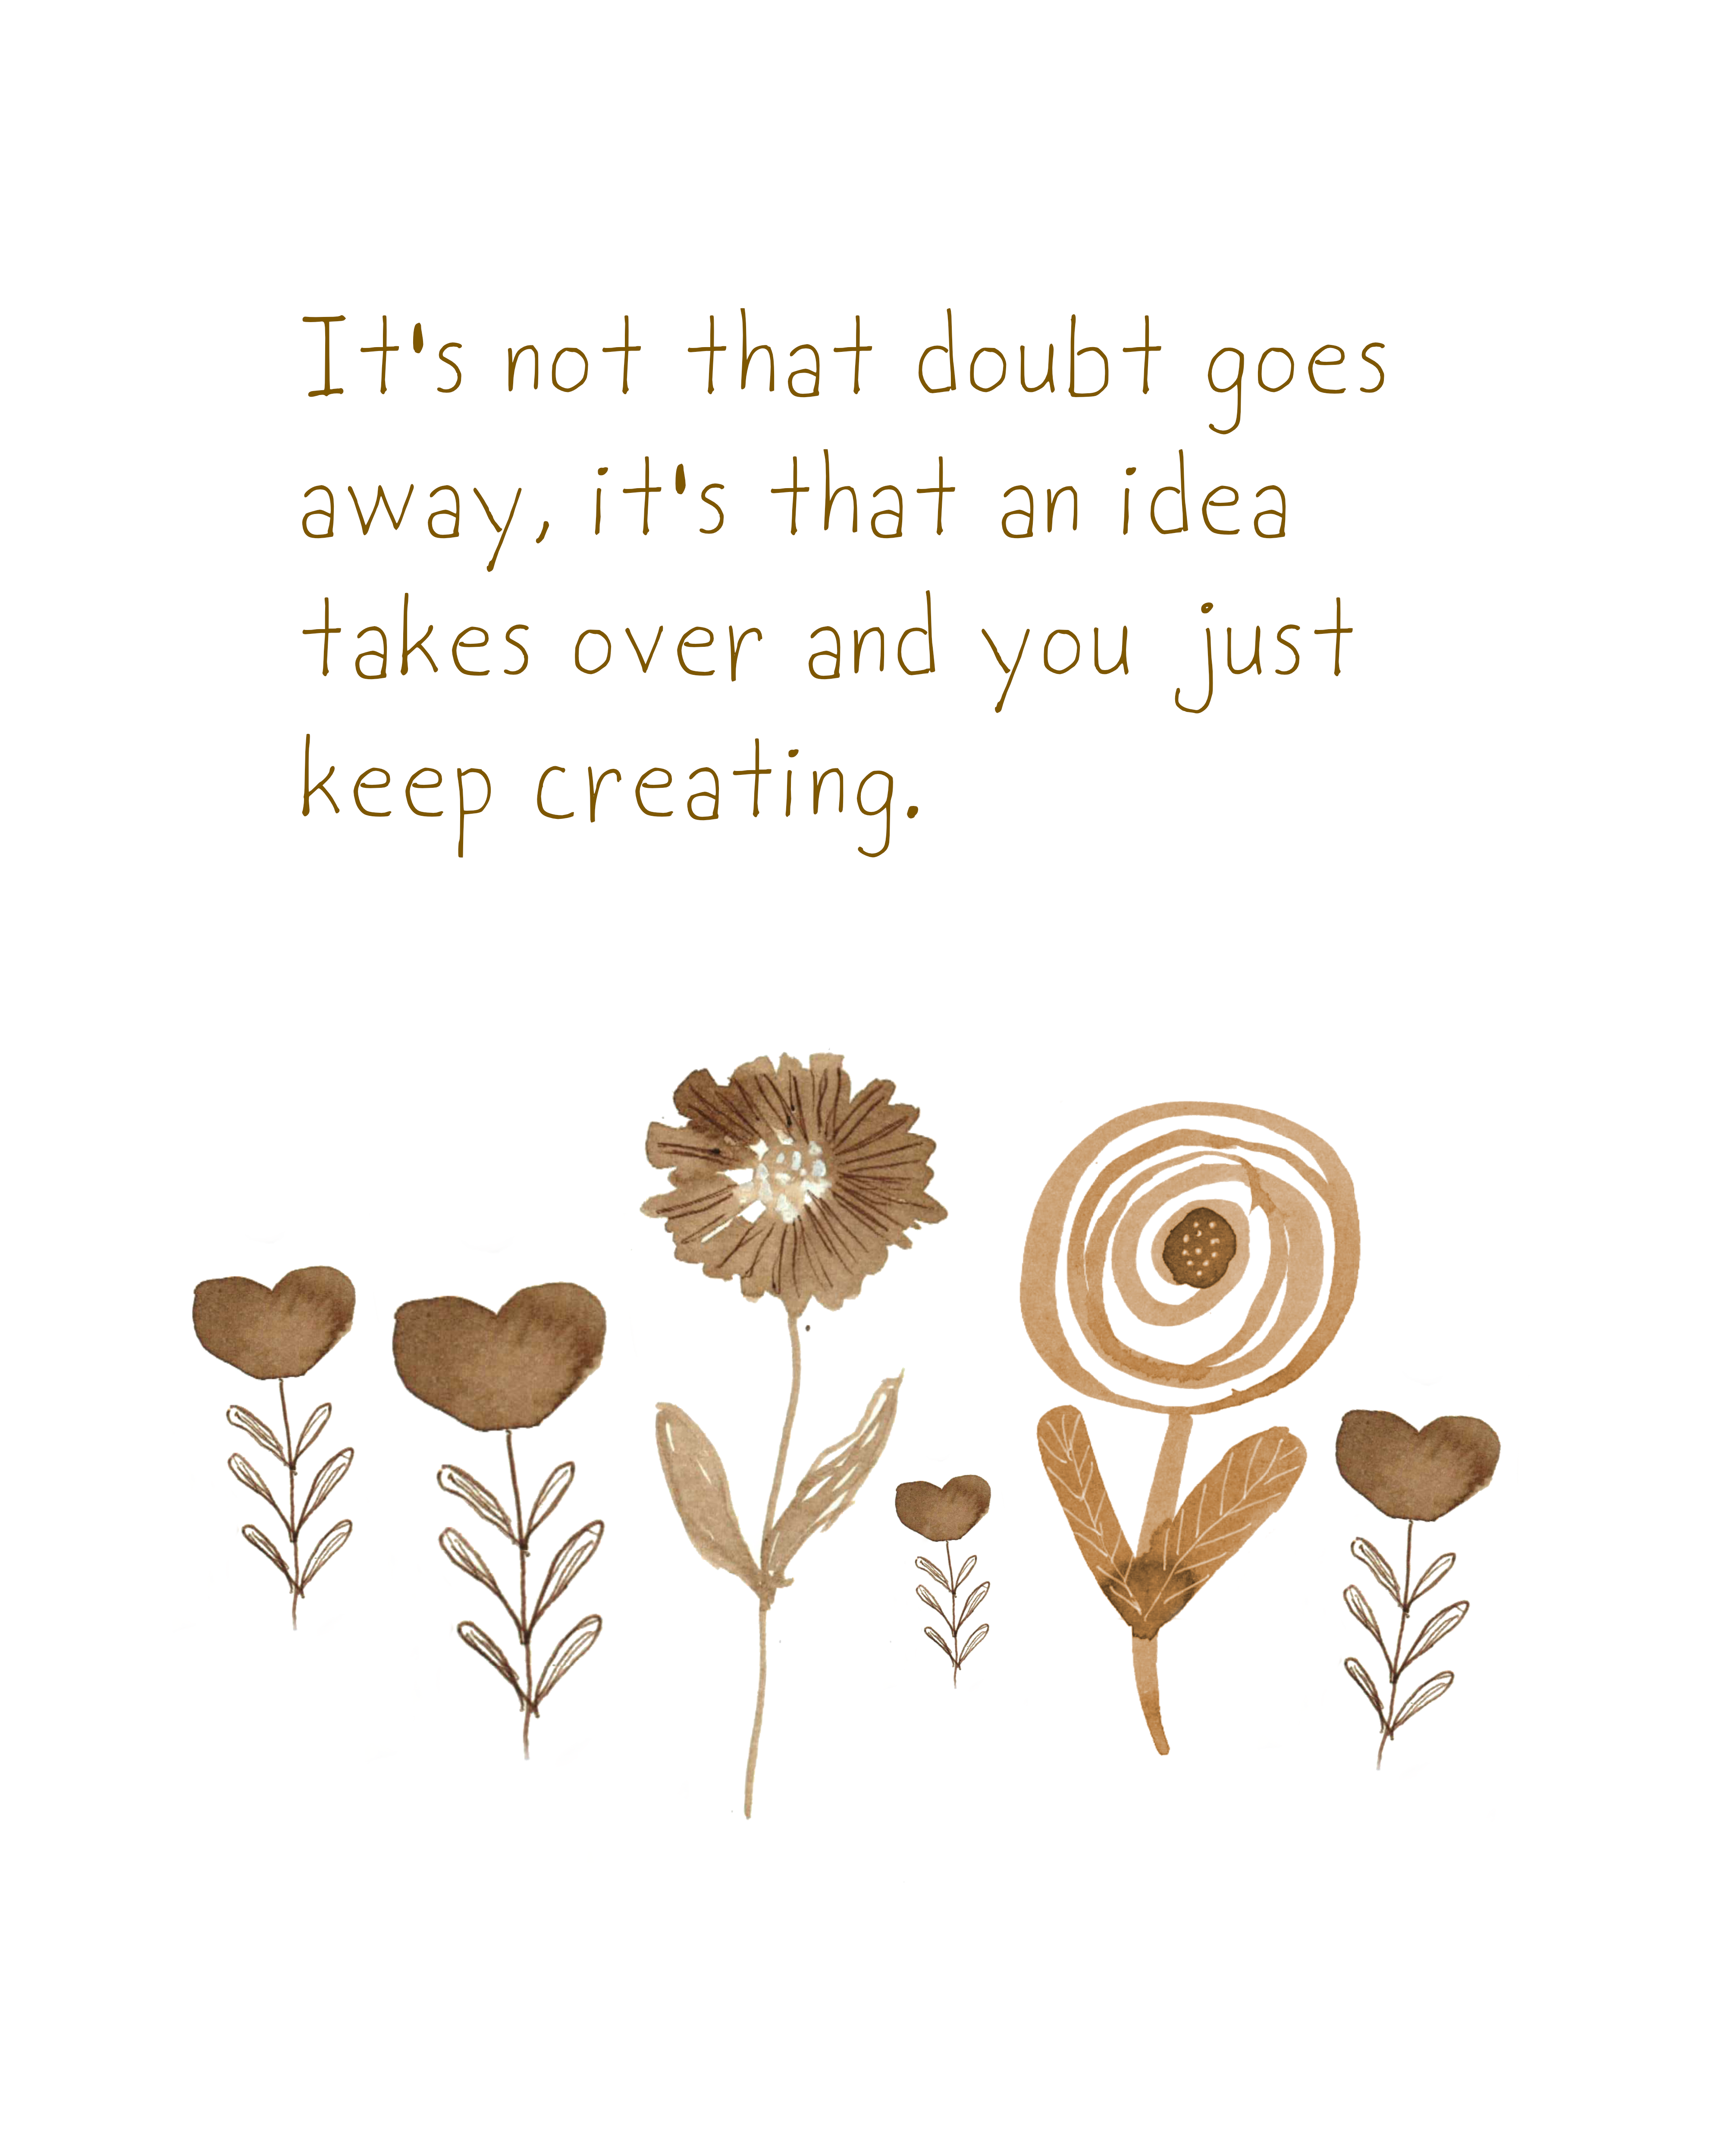 walnut ink florals with a quote about doubt and creating